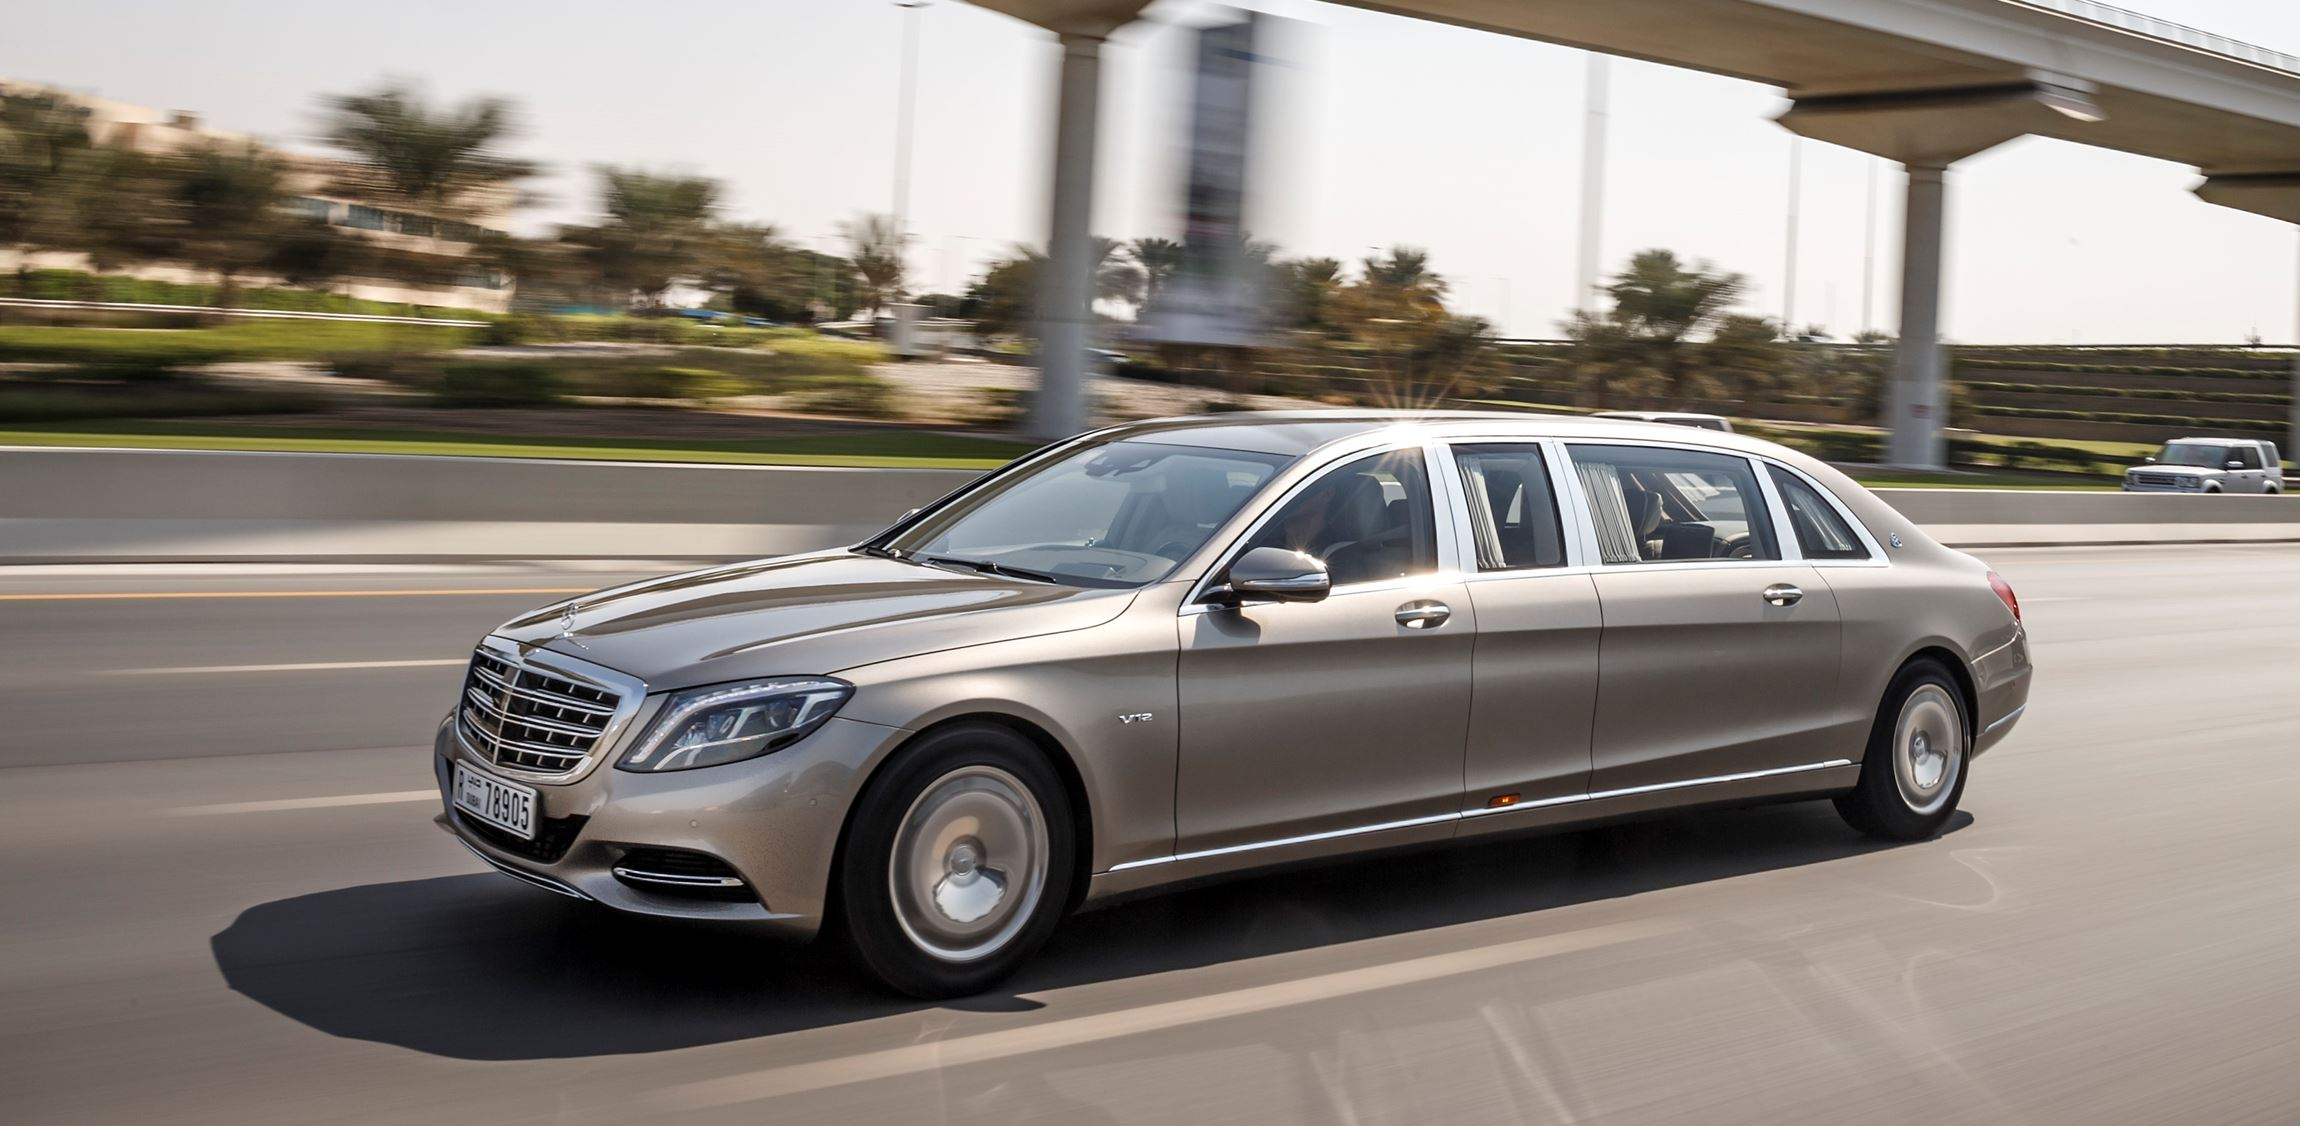 http://www.car-revs-daily.com/wp-content/uploads/2016-Mercedes-Maybach-PULLMAN-Limo-10.jpg